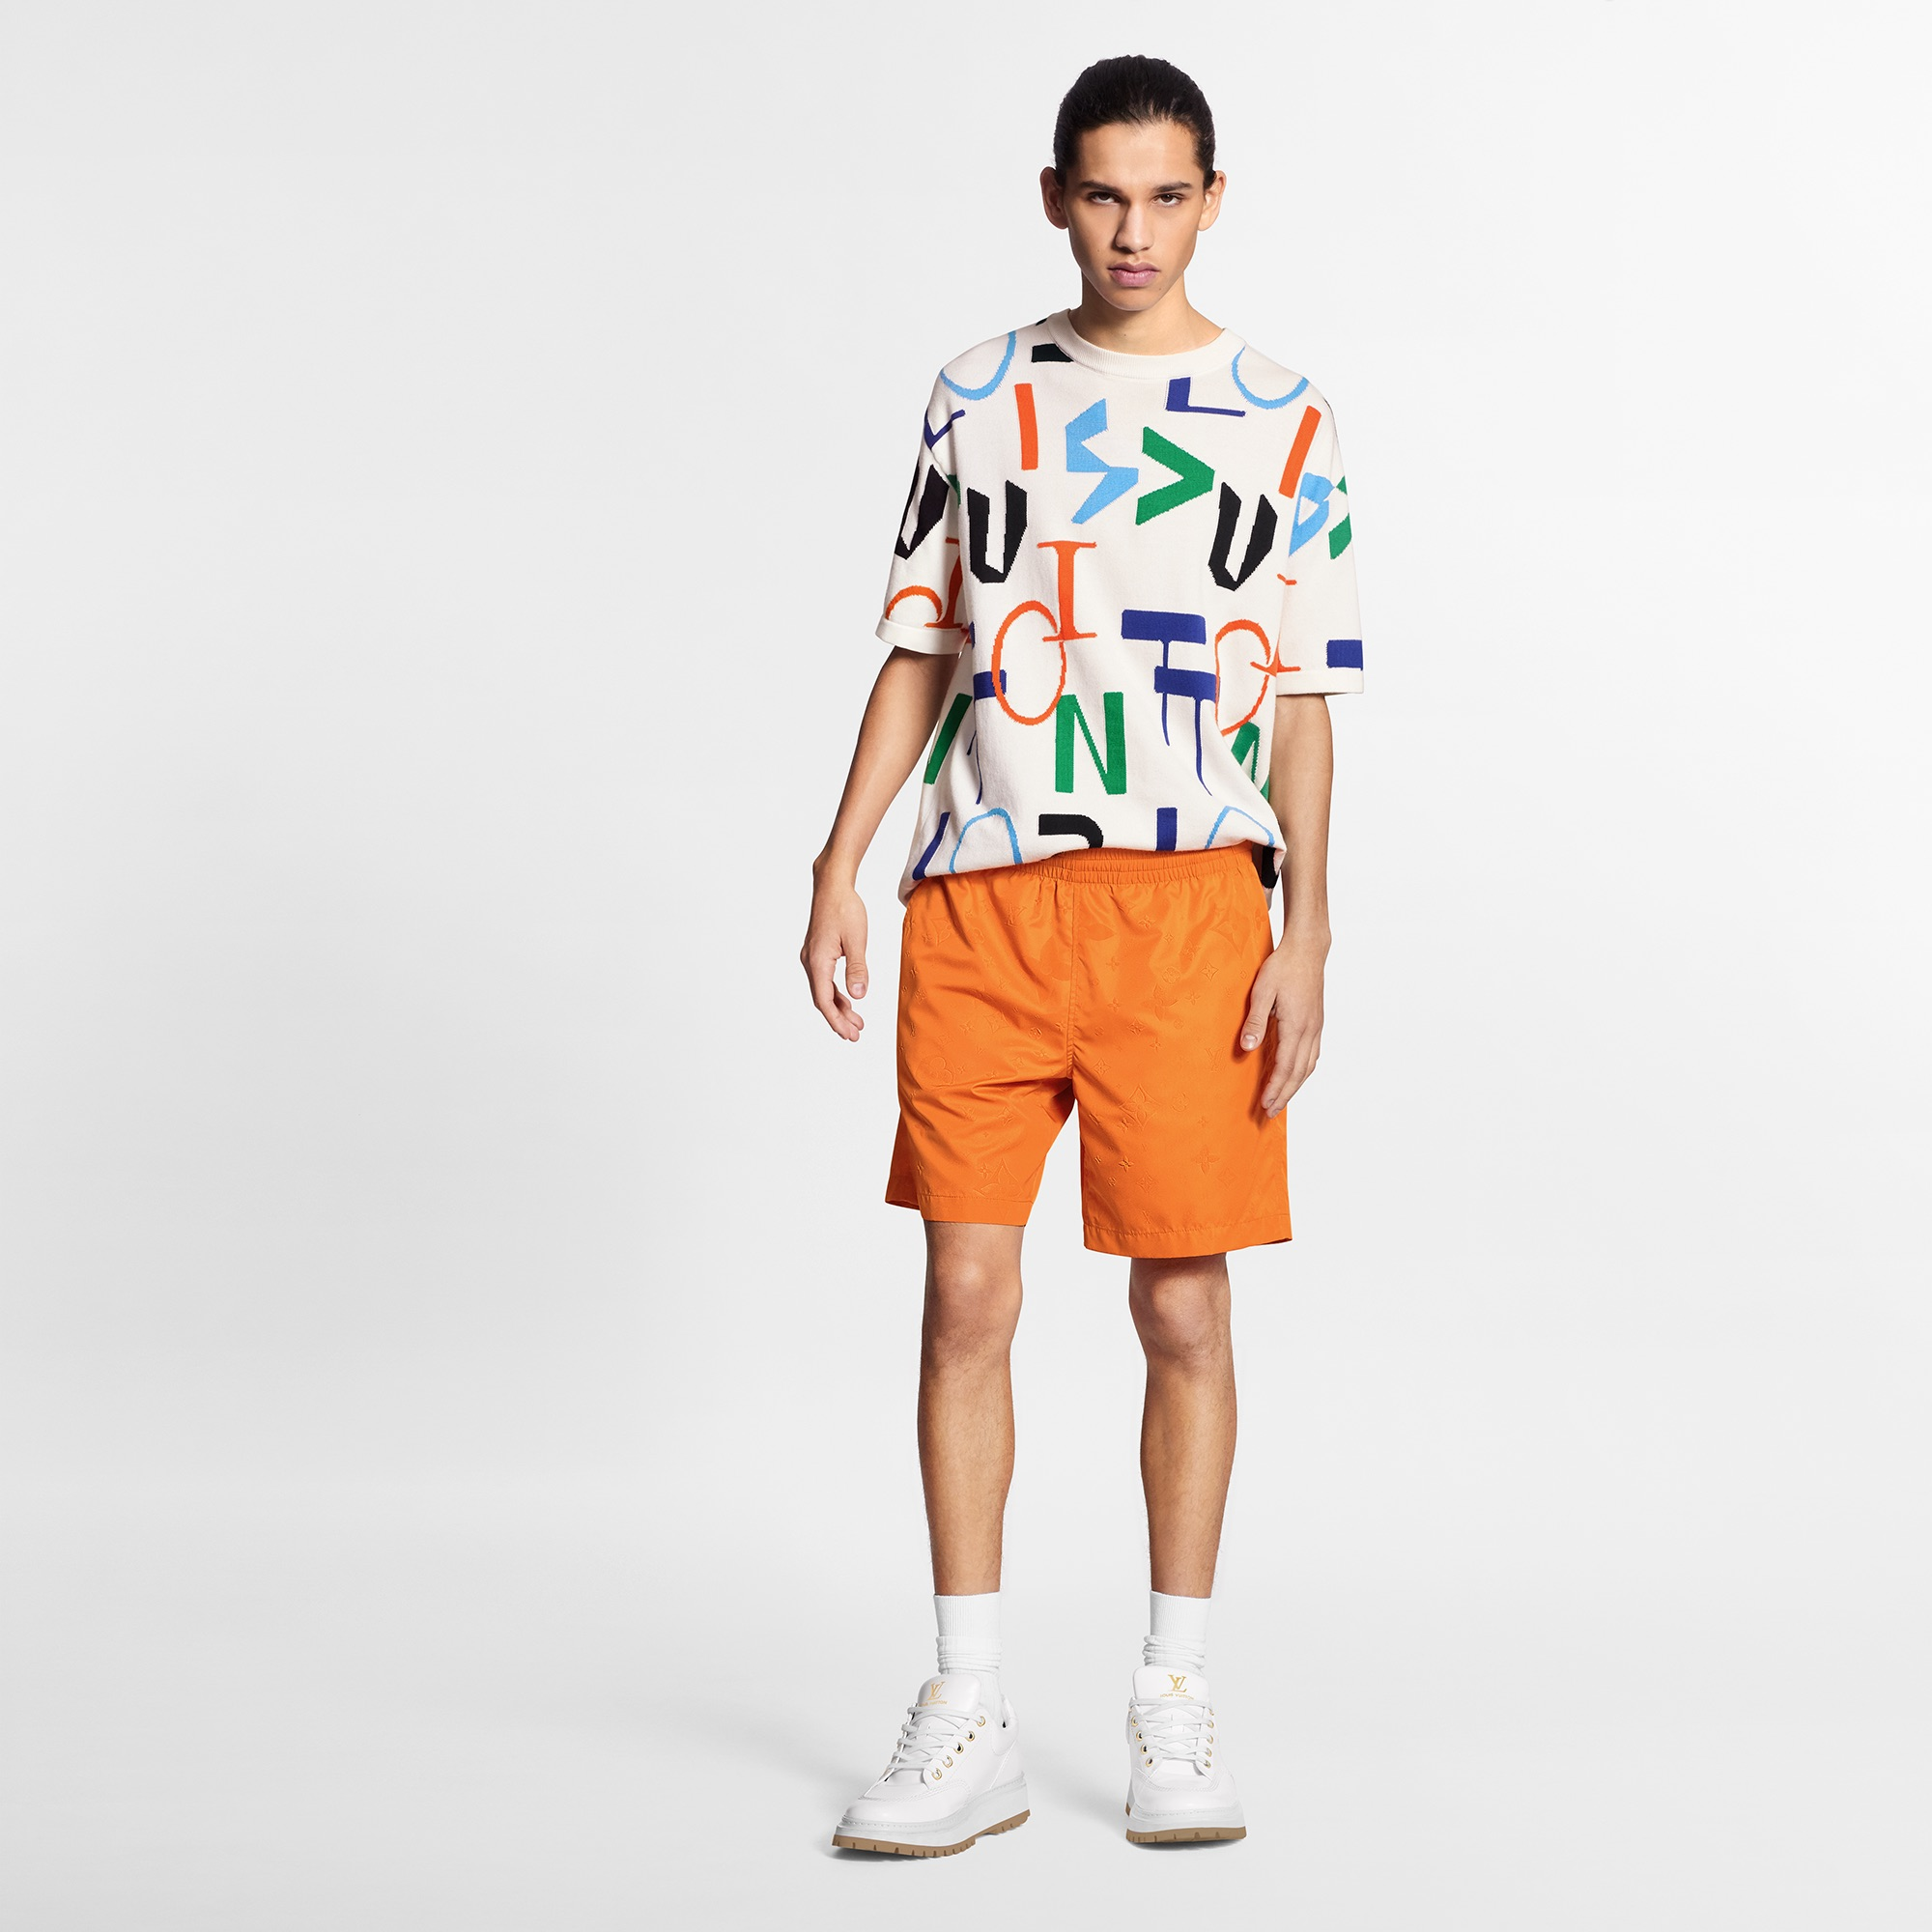 Louis Vuitton orange short and geometric t-shirt